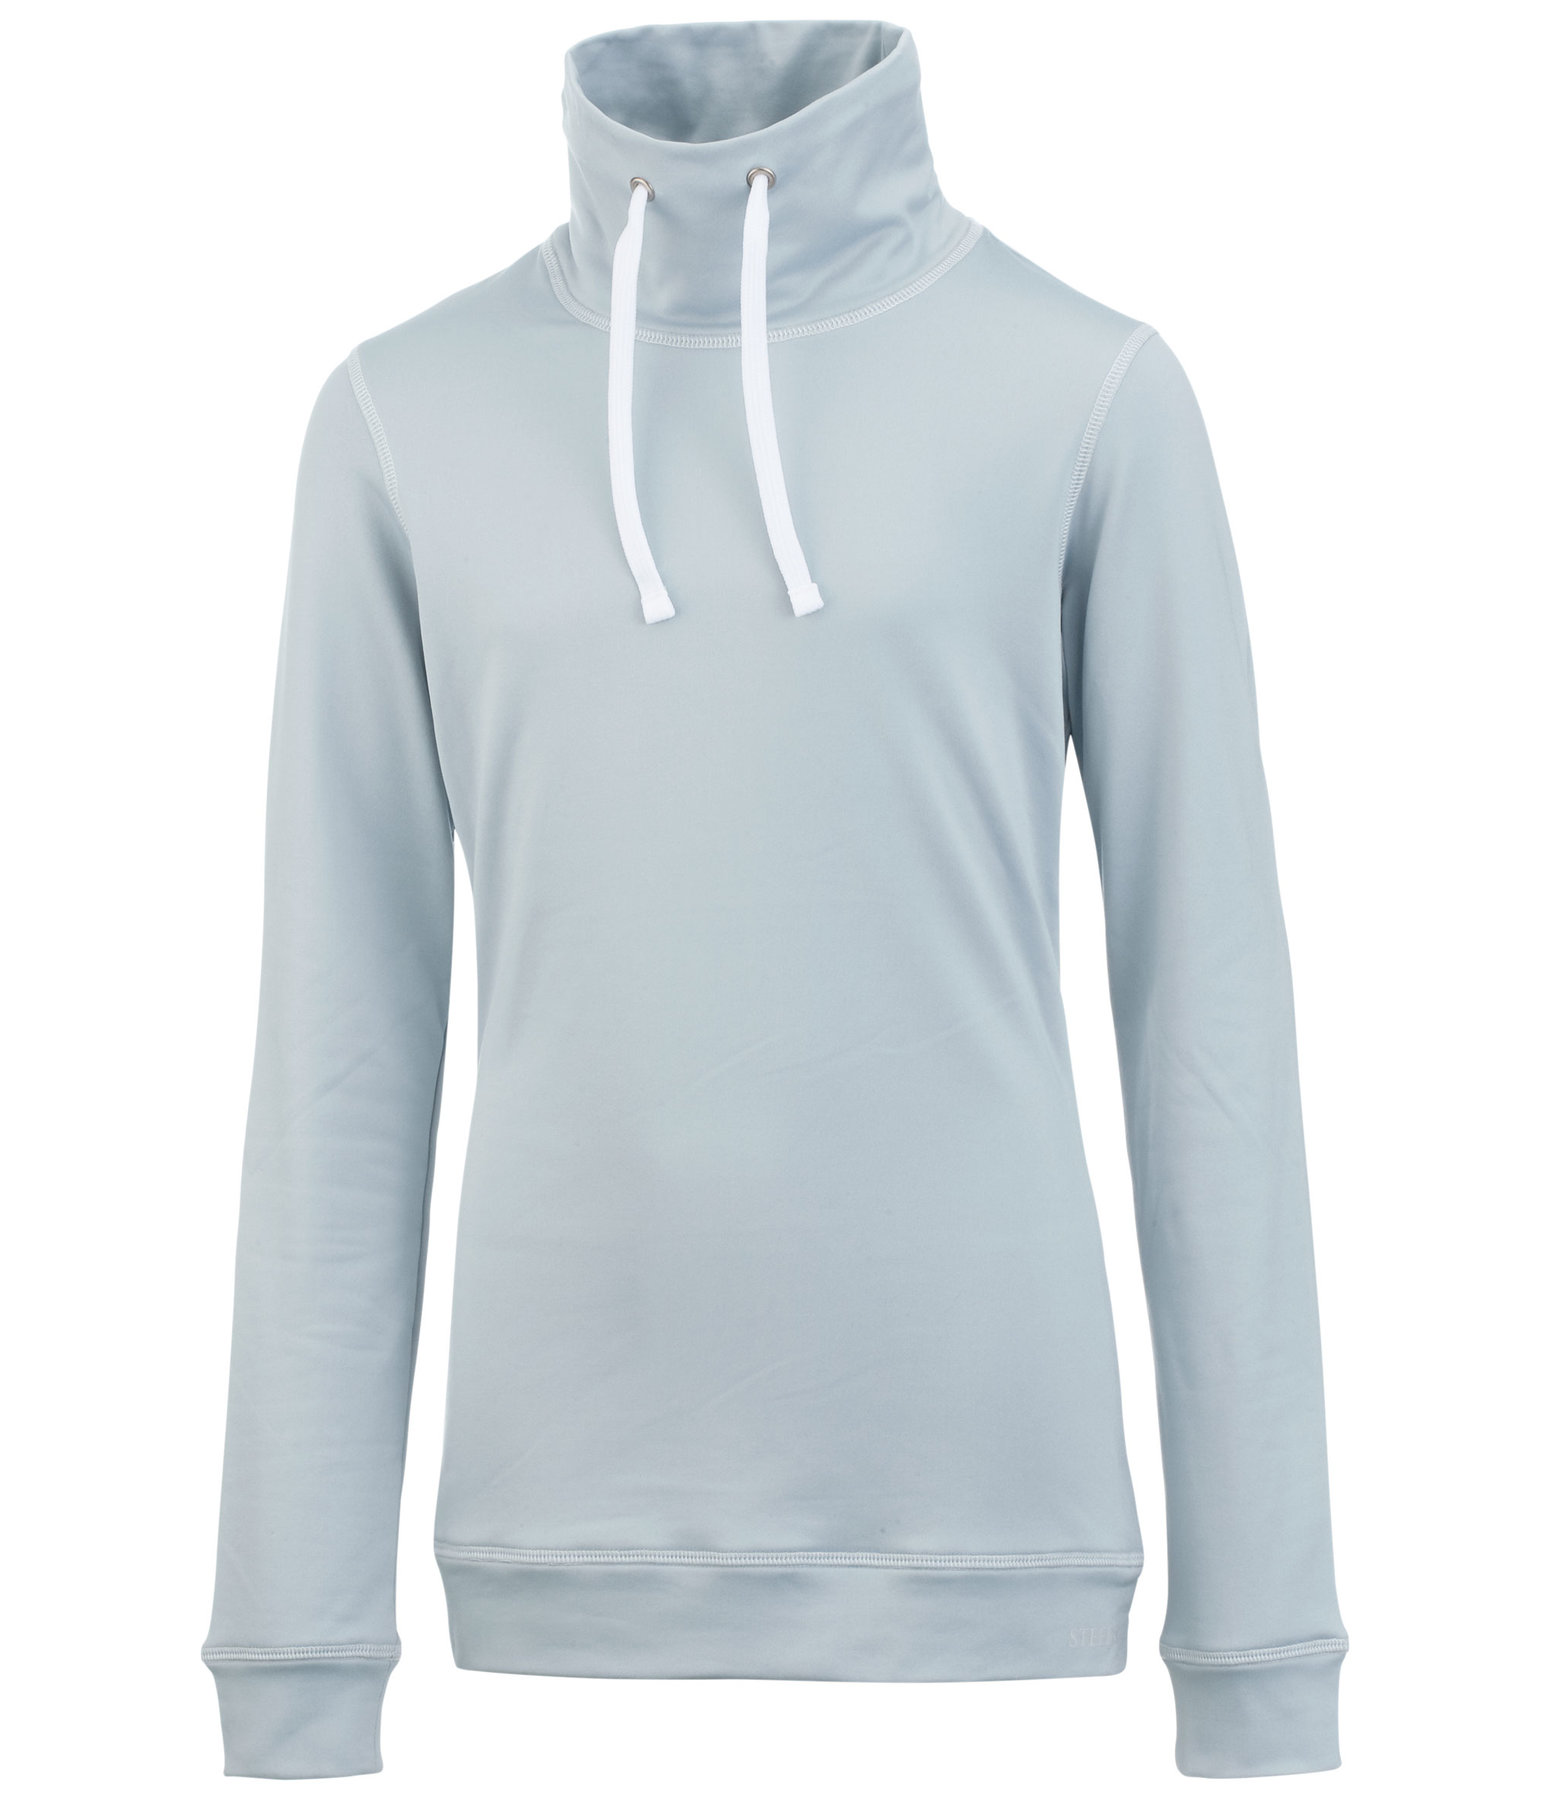 Kinder-Funktions-Stretch-Rollkragenpullover Lio